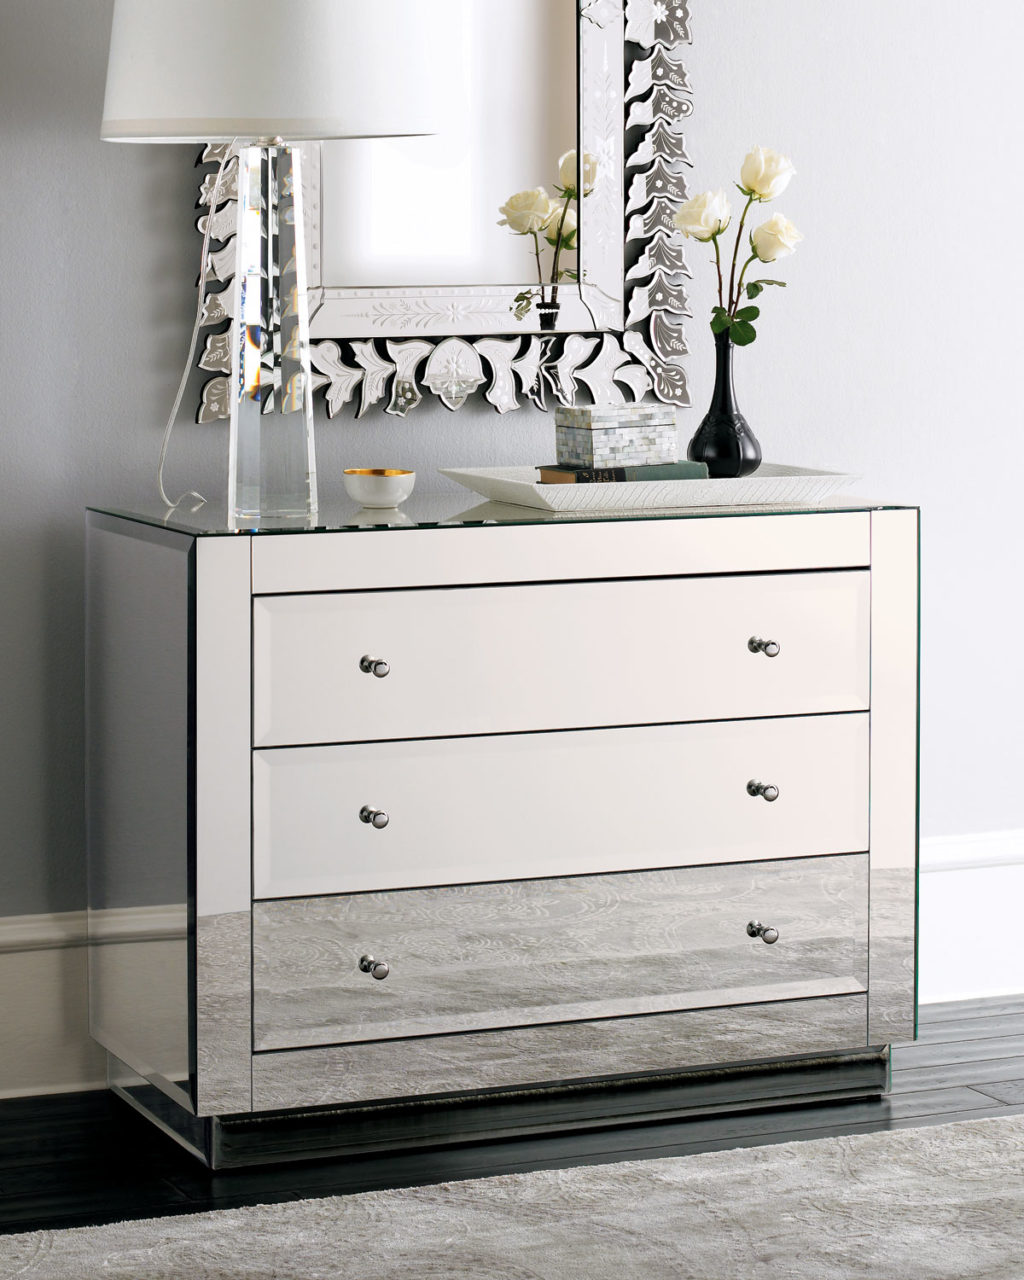 end tables furniture simple modern mirrored accent table with gallerie mirror dresser target nightstands ikea side dressers mirrors black coffee console desk monarch white full